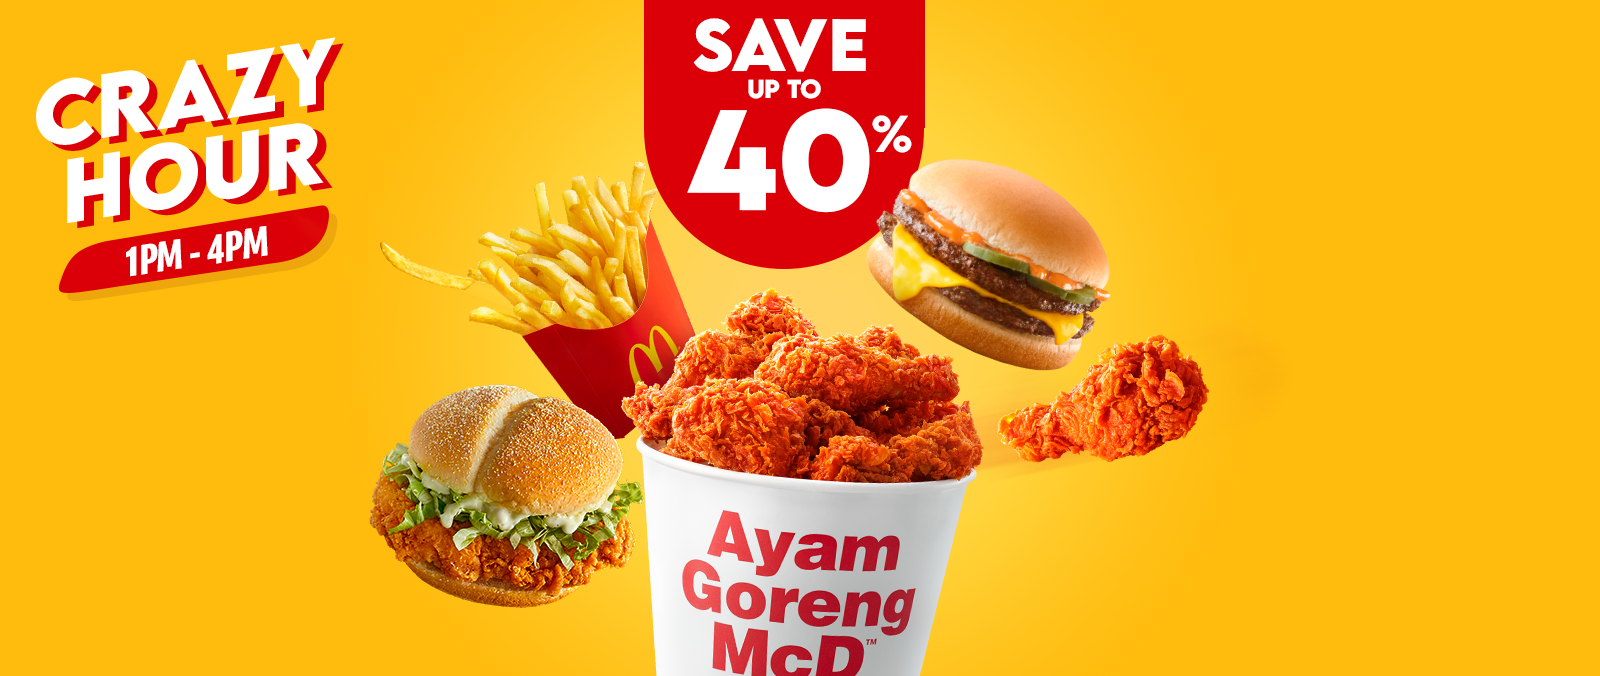 Daily savings of up to 40% with McDelivery Crazy Hour!'s image'